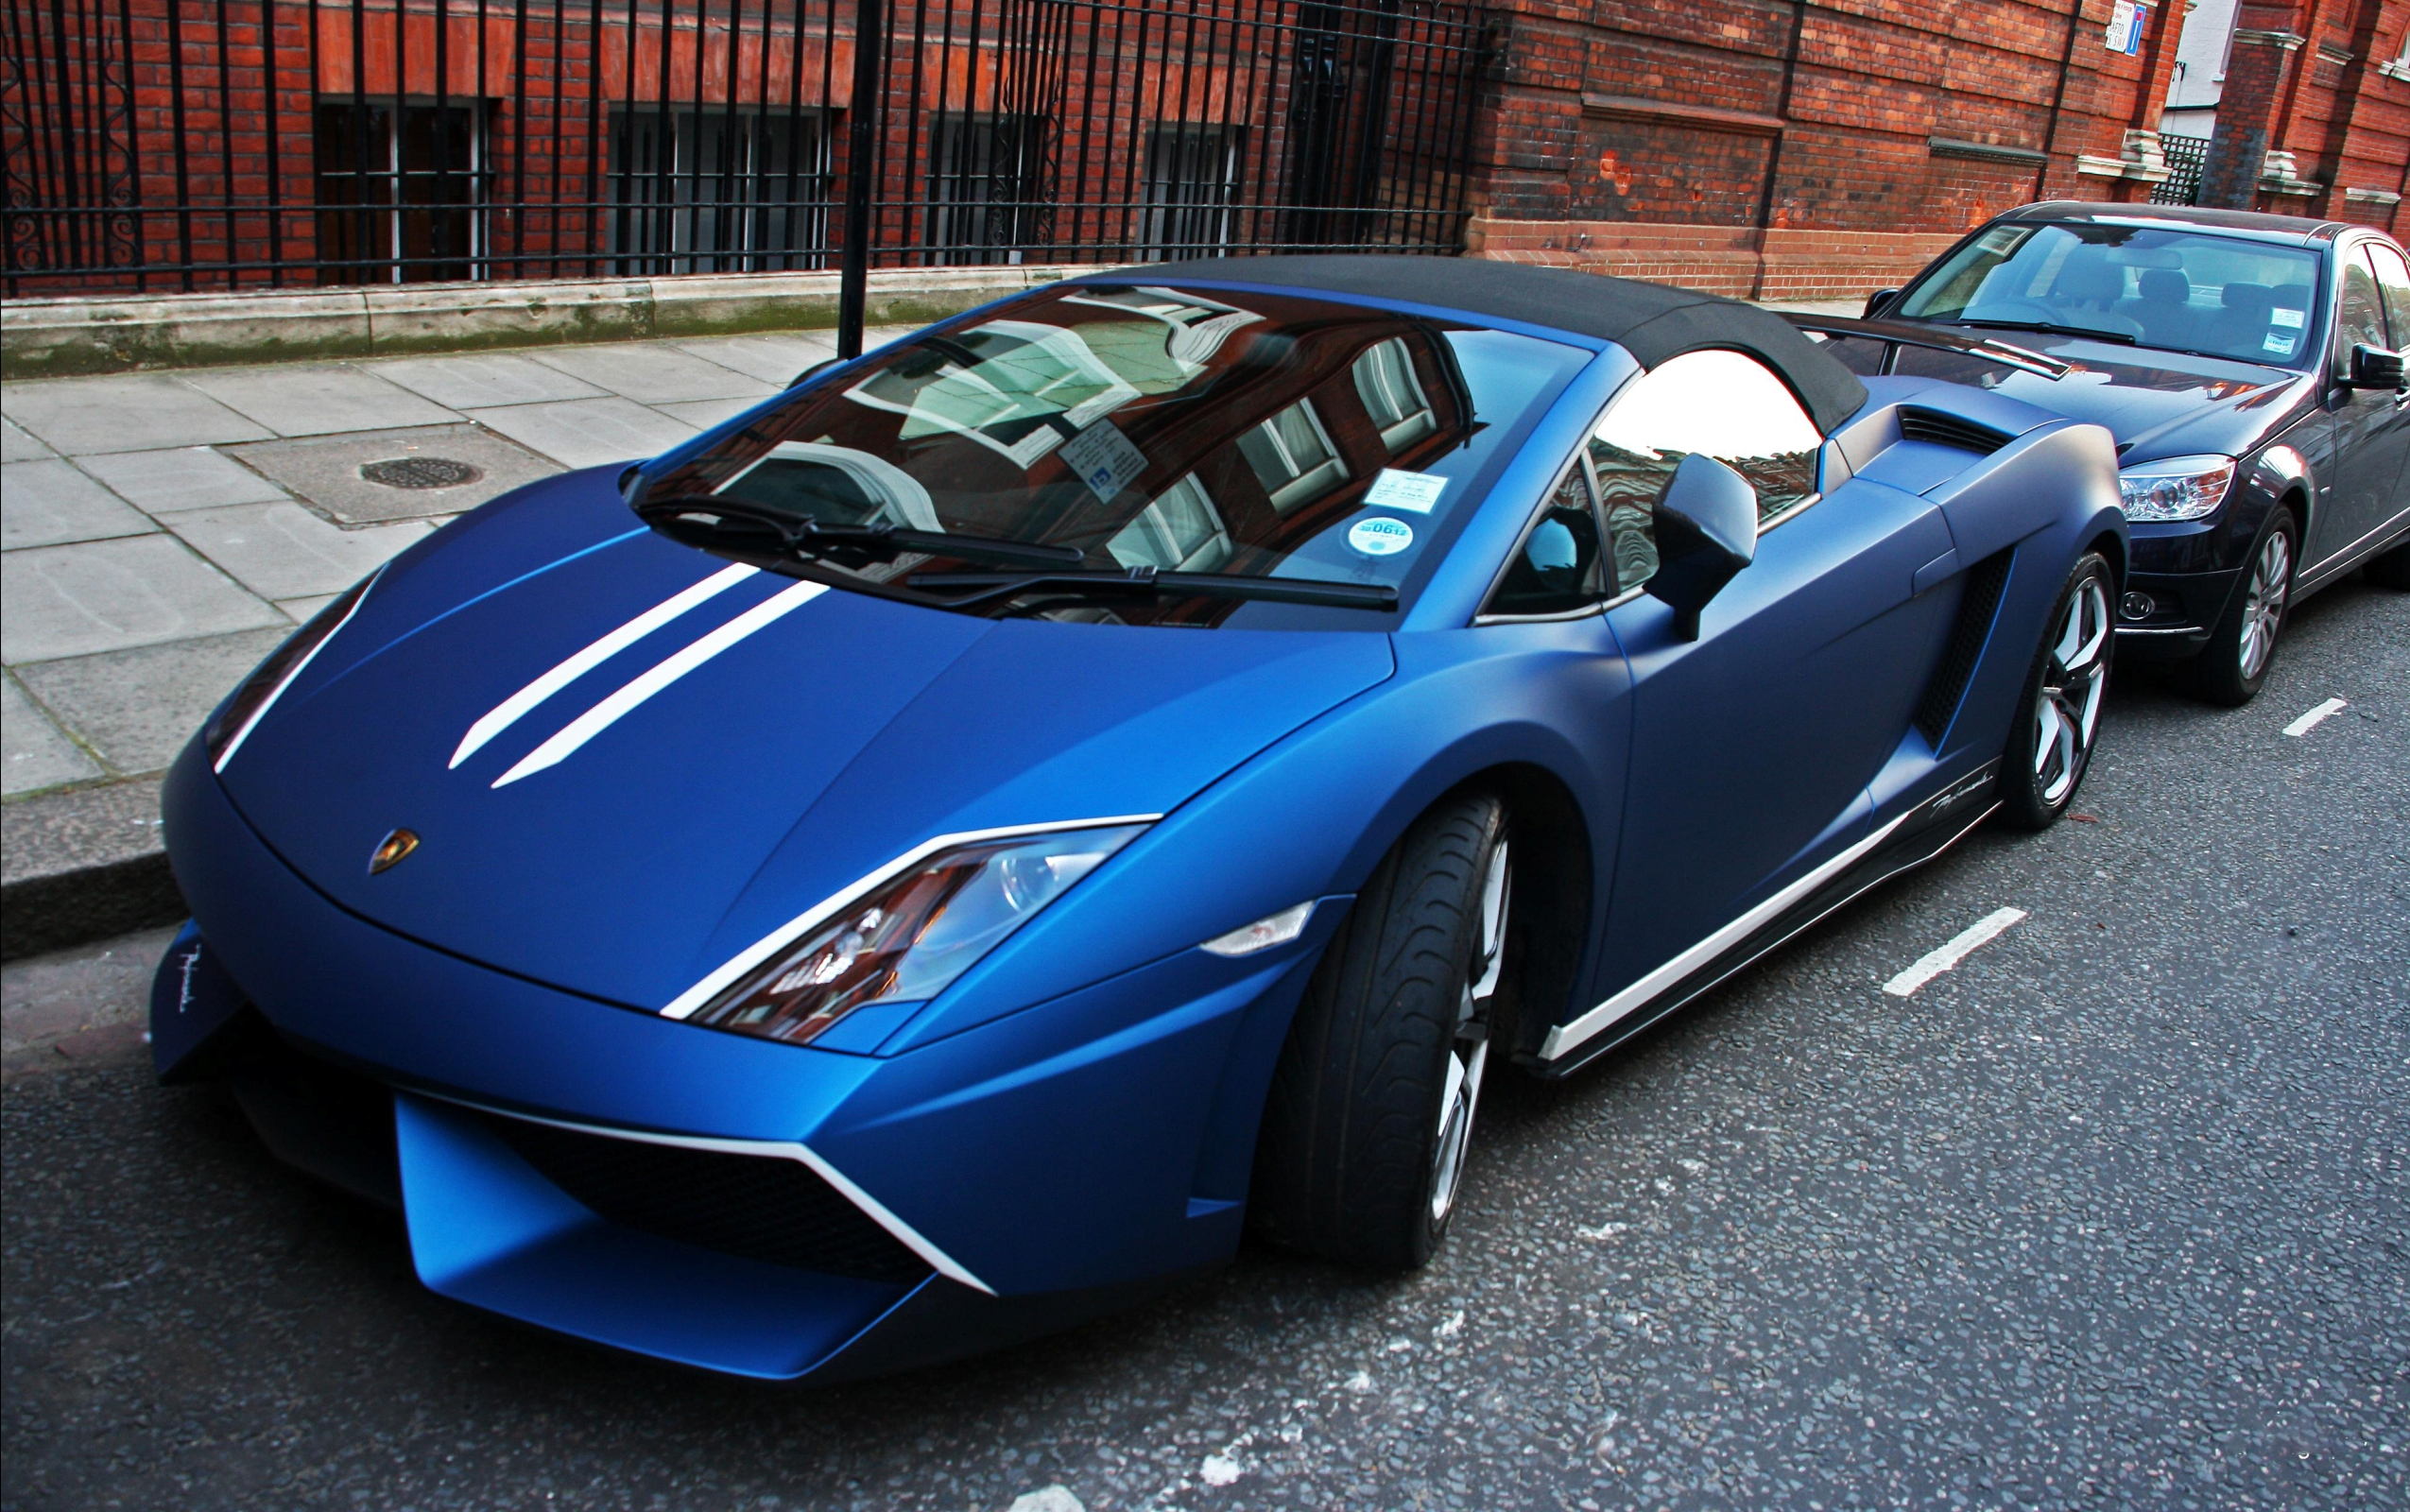 blue lamborghini gallardo park - Lamborghini Gallardo Wallpaper Blue